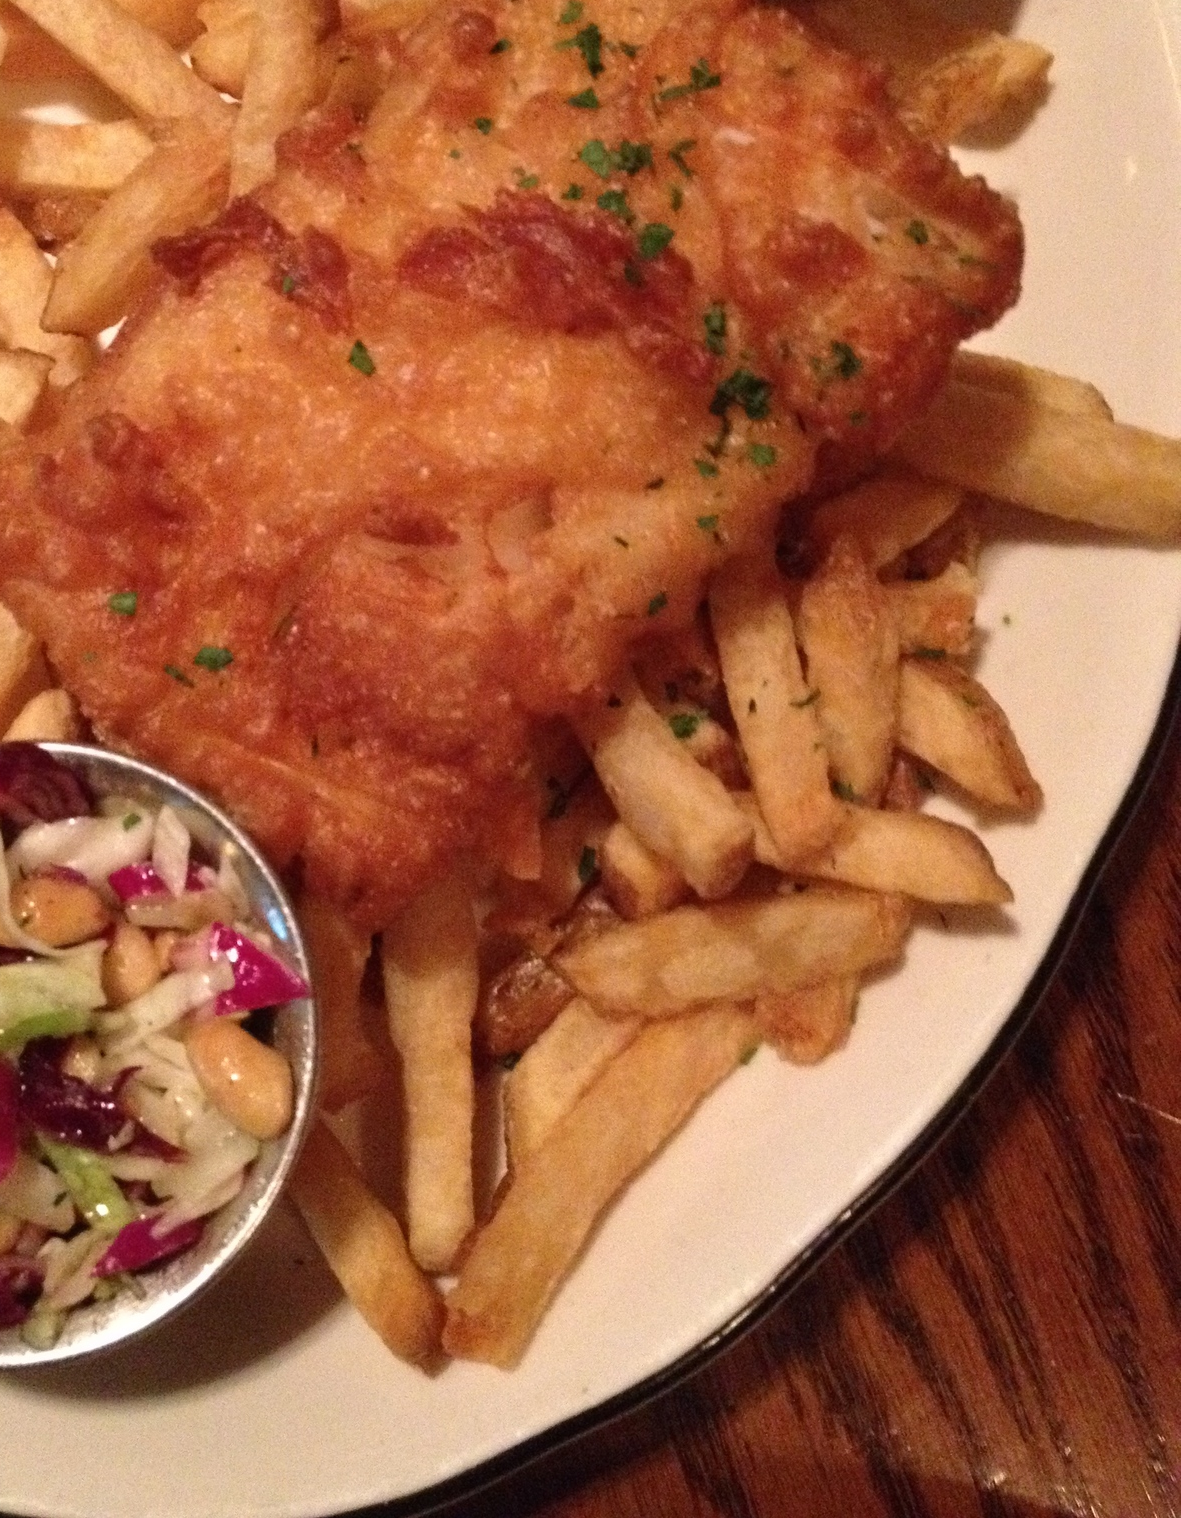 FISH AND CHIPSlocally caught cod, hand-cut beef fat fries,peanut coleslaw, and house-made tartar sauce